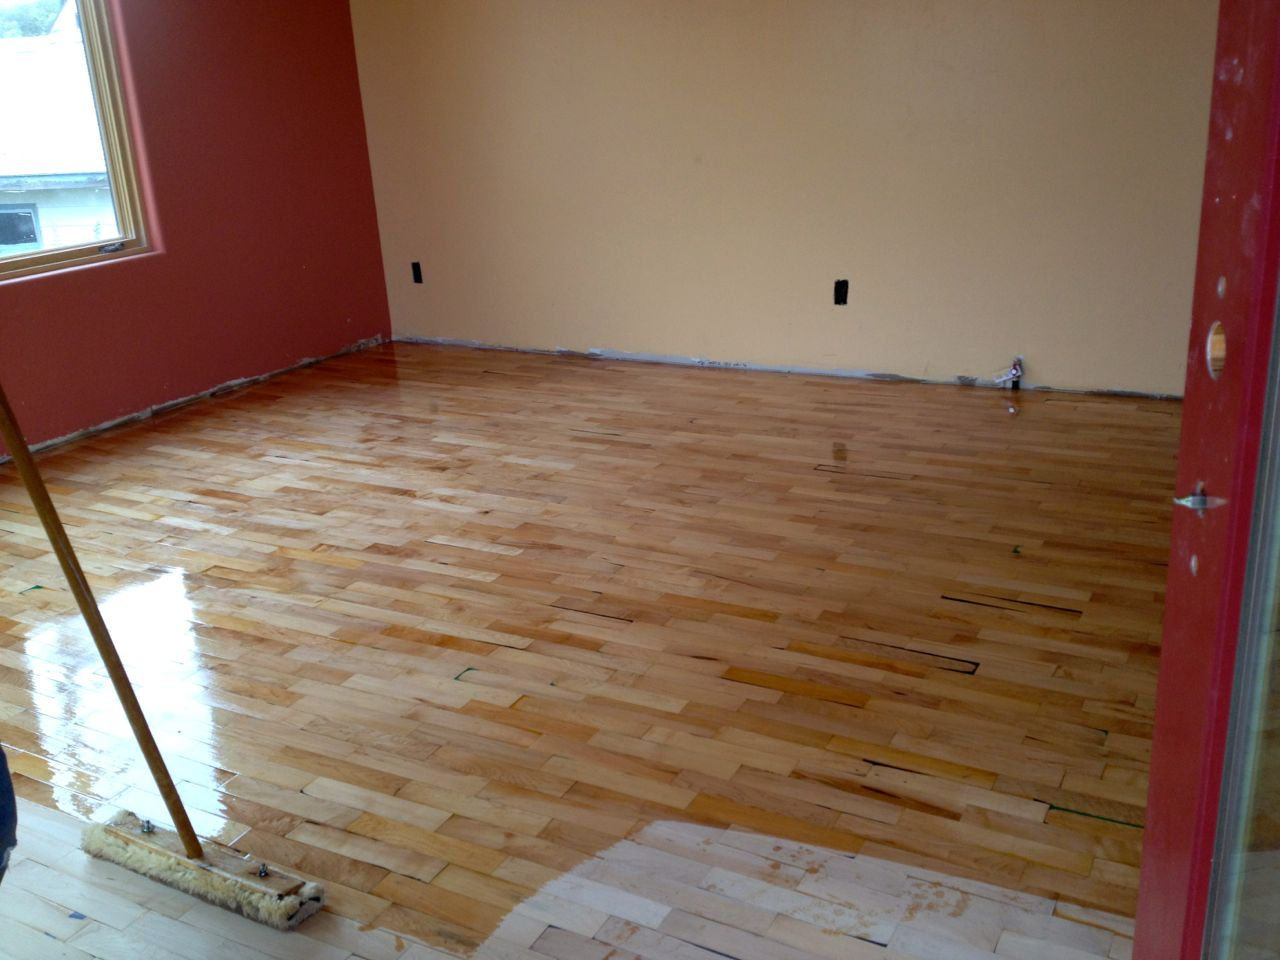 Maple strip flooring reclaimed from an old gymnasium.